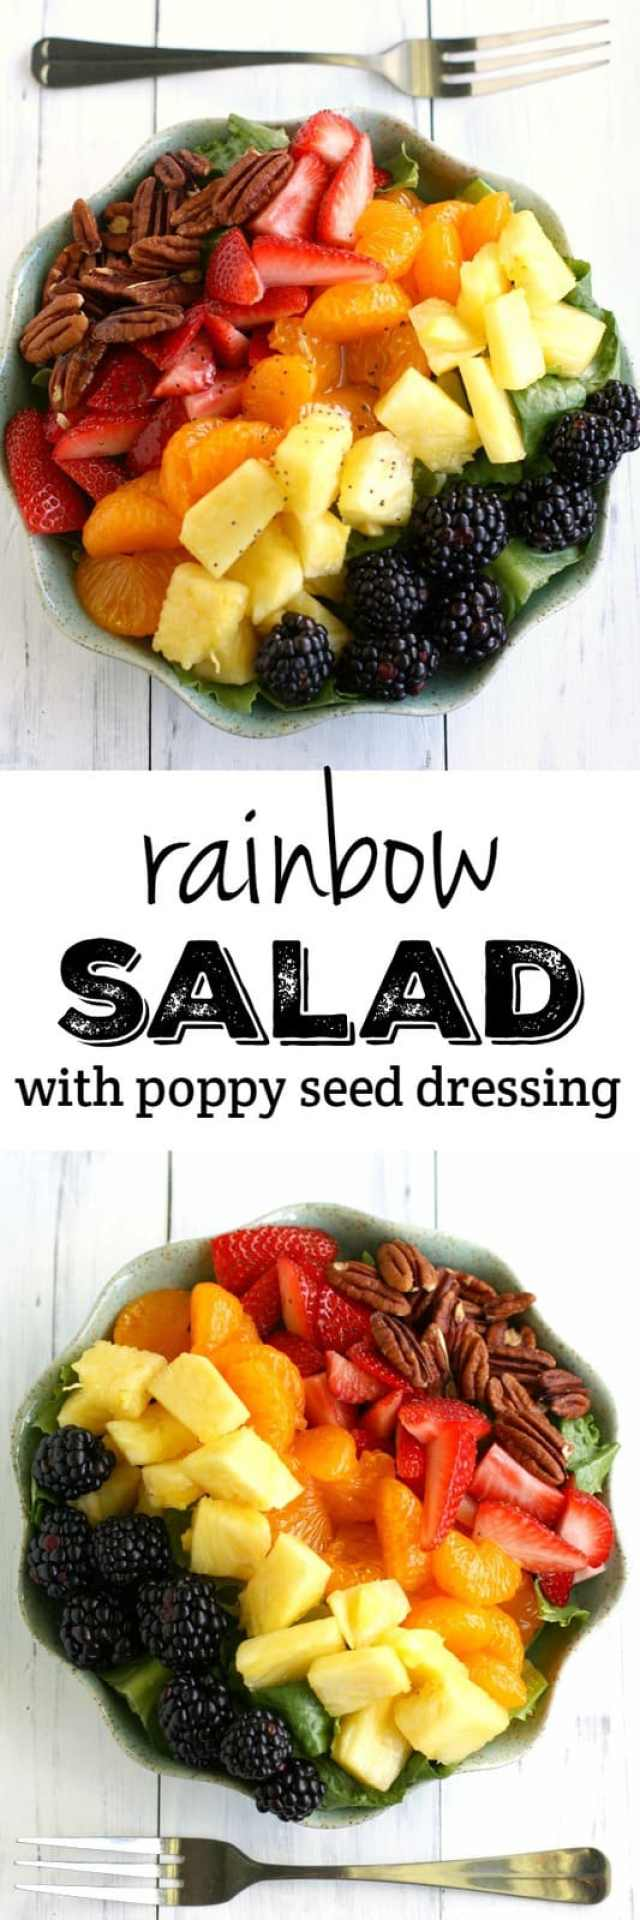 A fresh and delicious salad with a rainbow of fruits, pecans, and a poppy seed dressing. Inspired by Panera's salad, this version is easy to make at home!